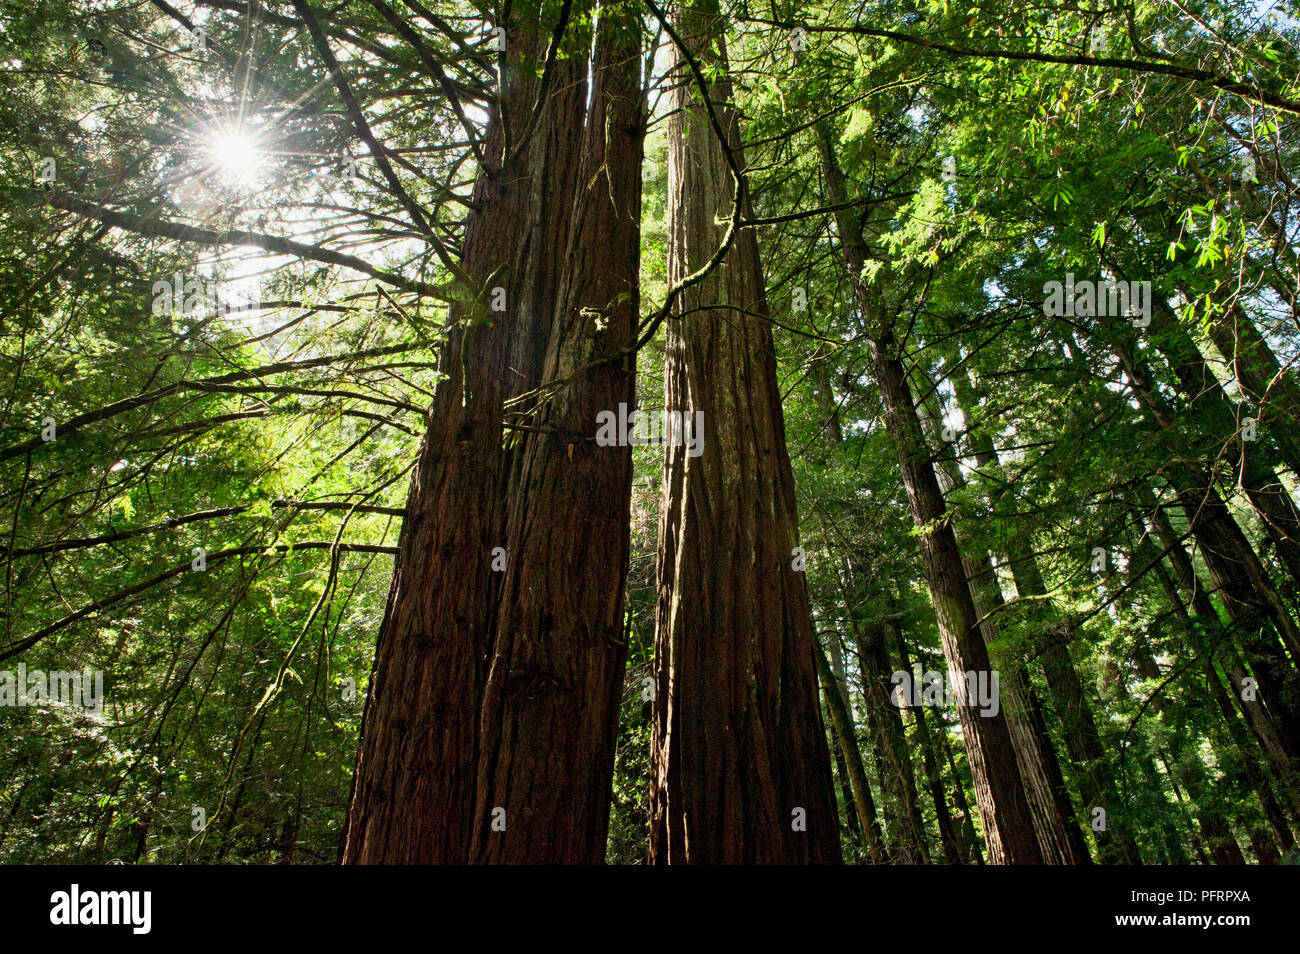 USA, California, Sonoma County, Armstrong Redwoods State Park, sunlight through tall trees in forest - Stock Image